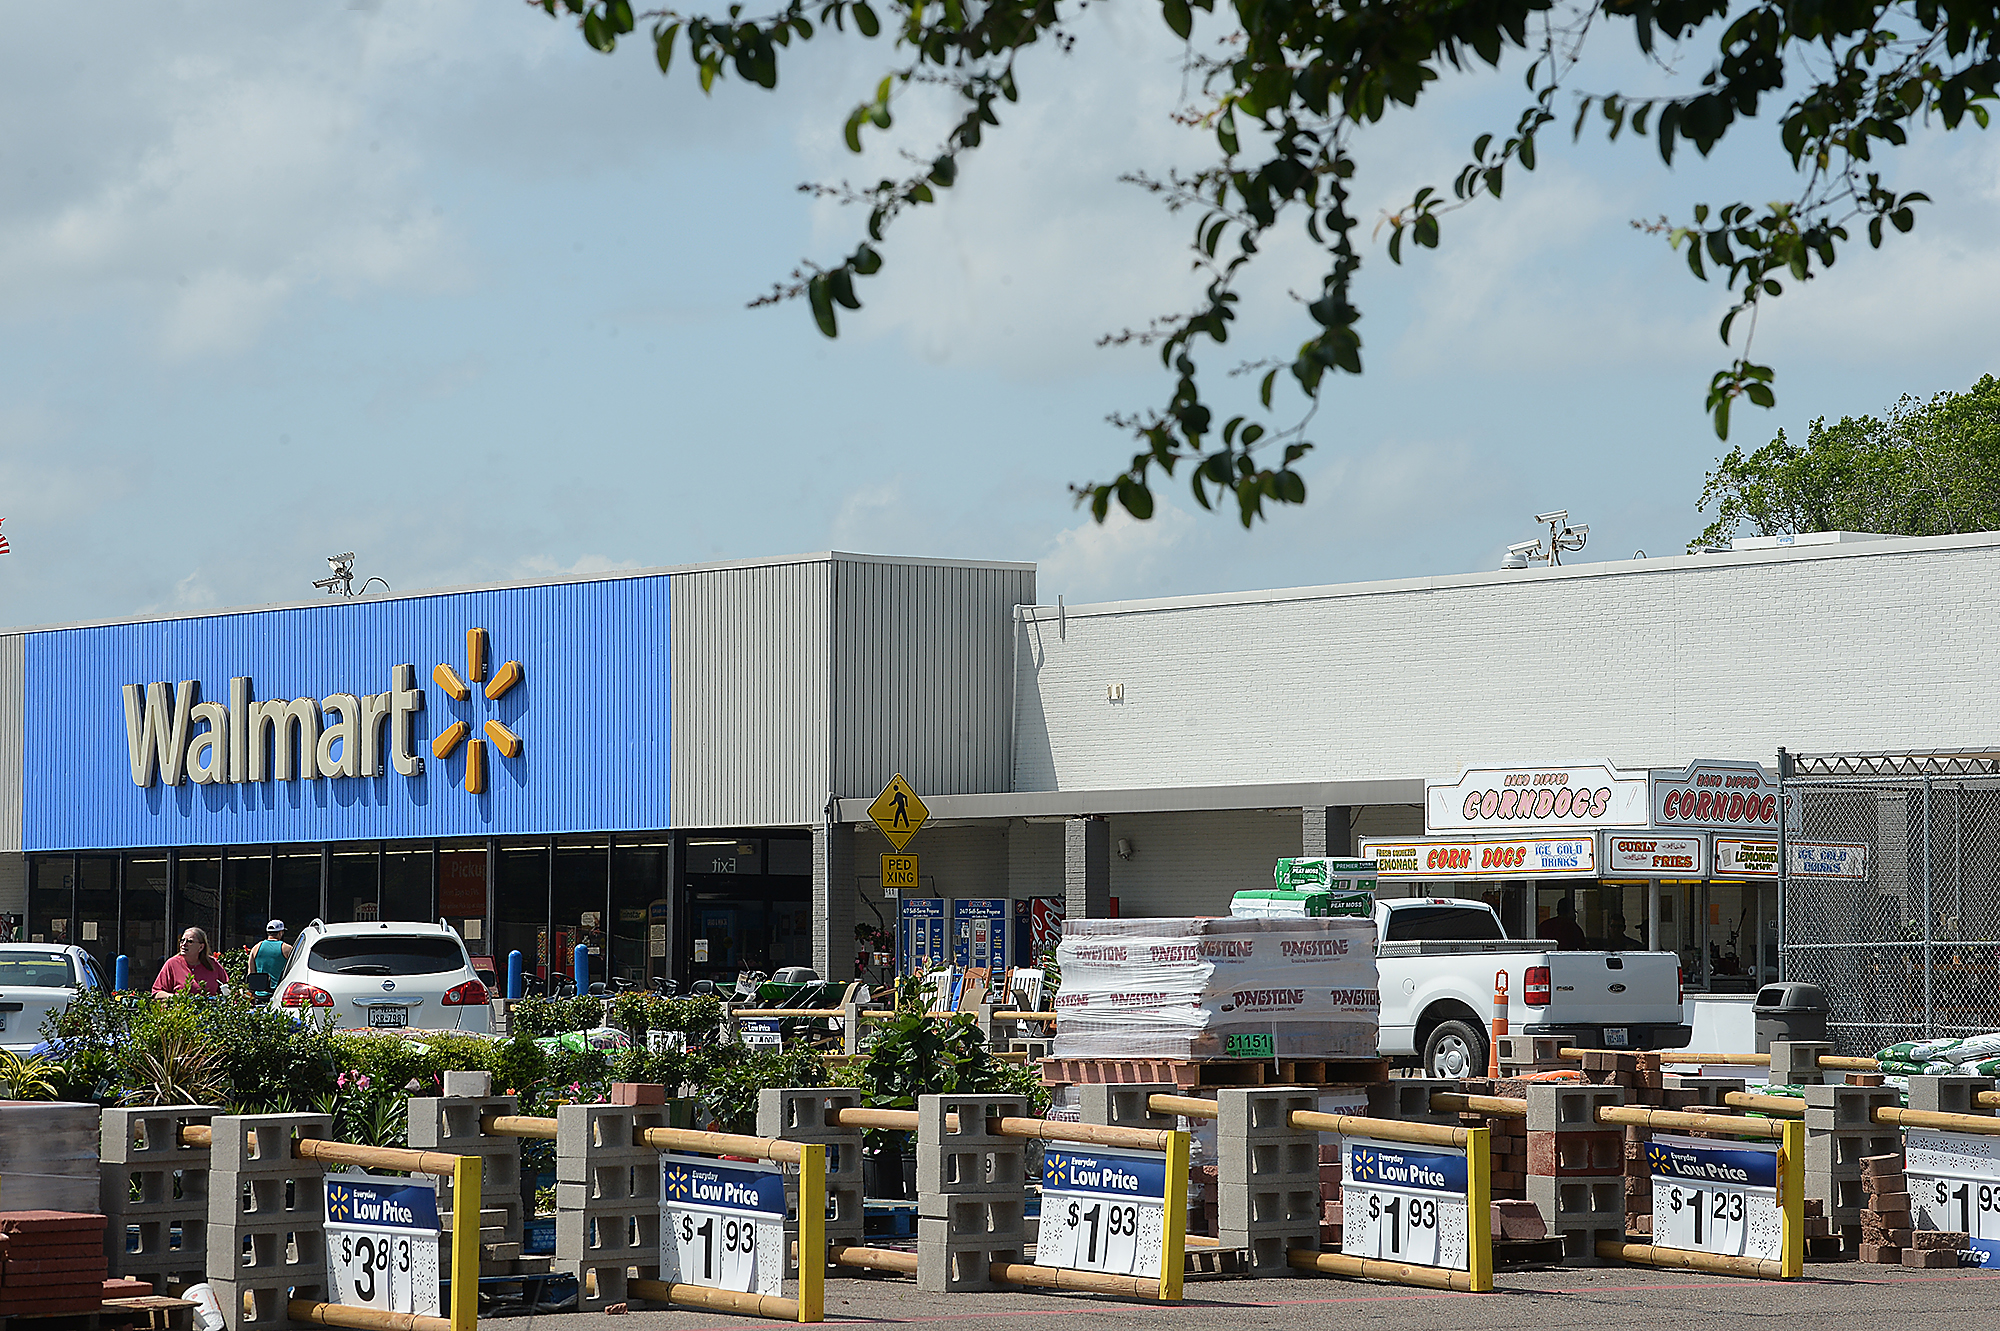 bridge city walmart getting upgrade  but what will happen with the corndog stand